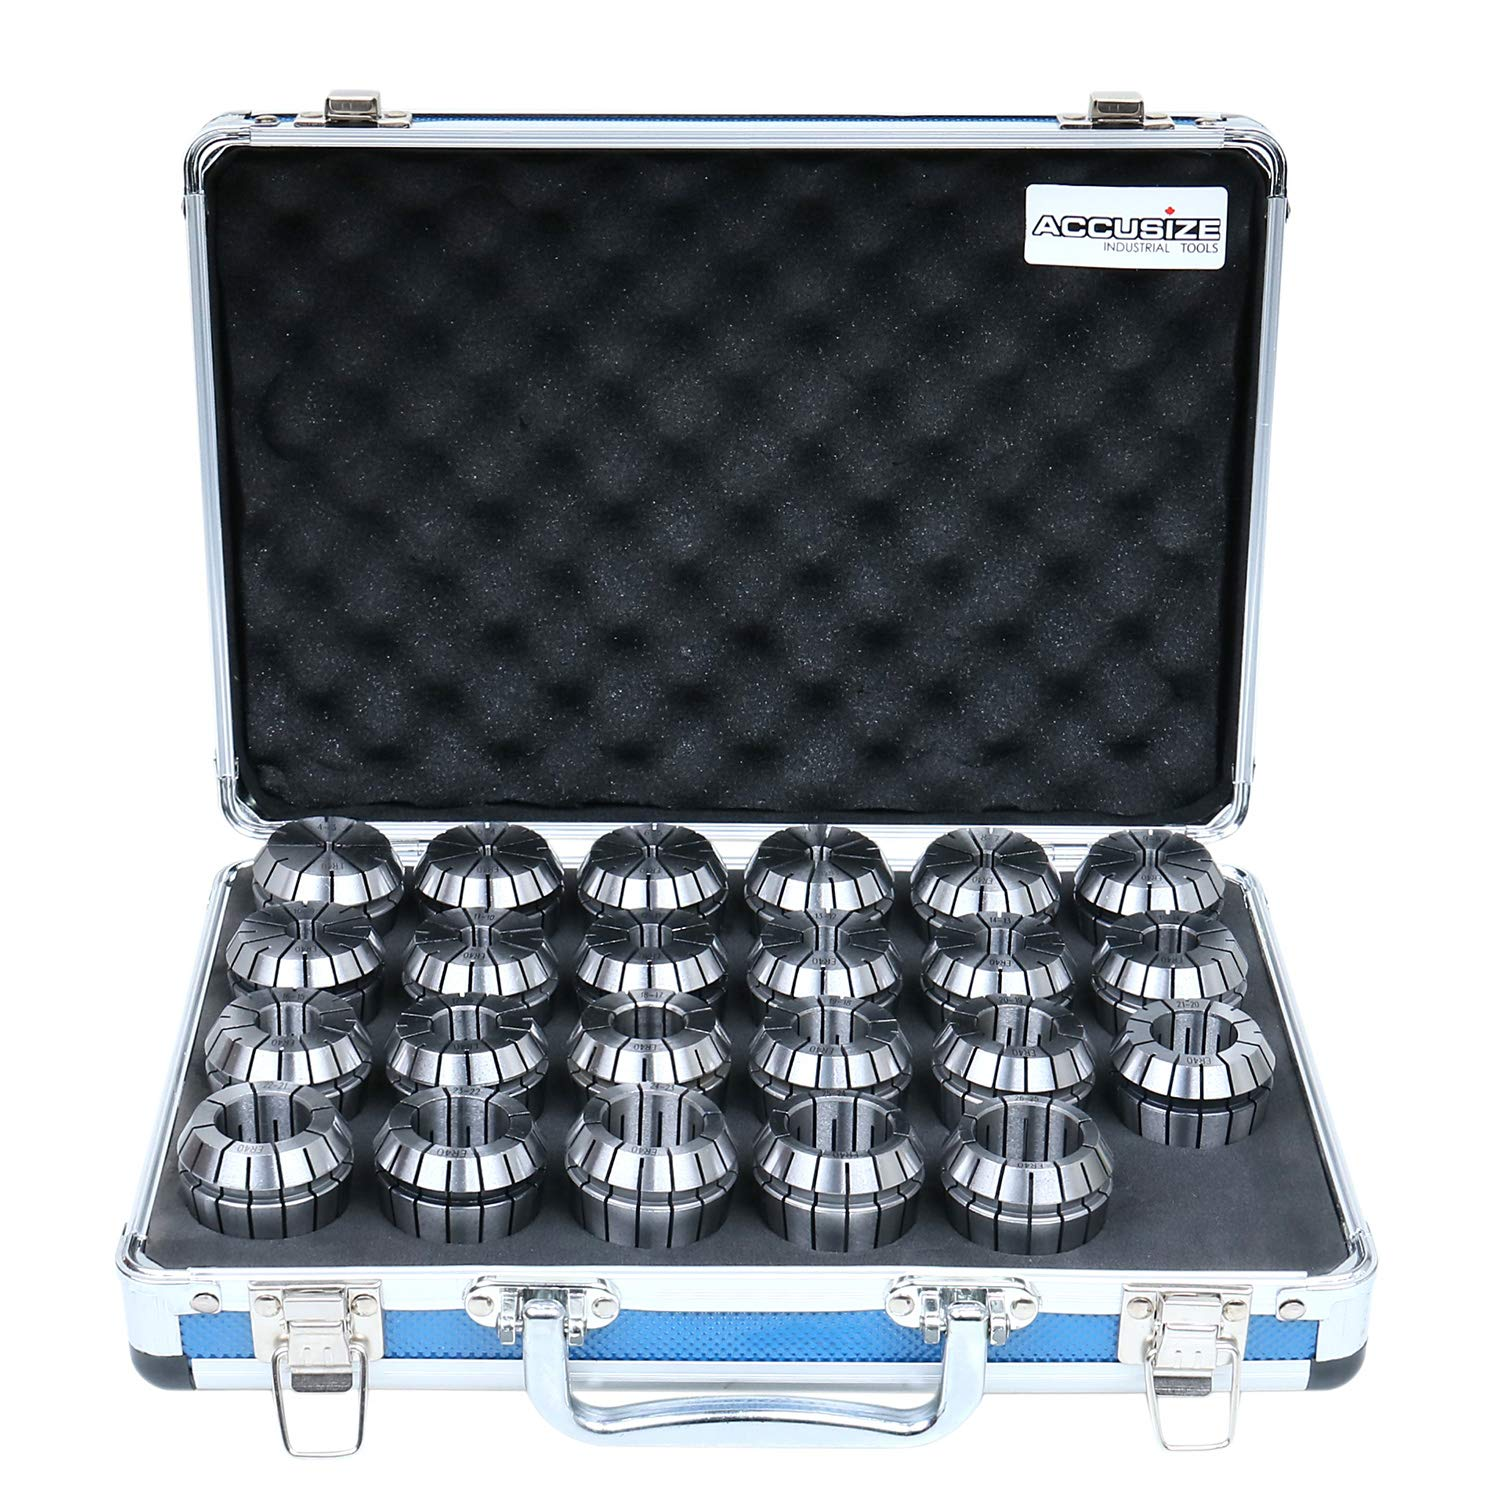 B00SJEK6M6 Accusize Industrial Tools 4 mm to 26 mm by 1 mm ER-40 Collet Set, 23 Pcs/Set in Fitted Strong Aluminium Box, 3350-0586 819cjUoBcNL._SL1500_